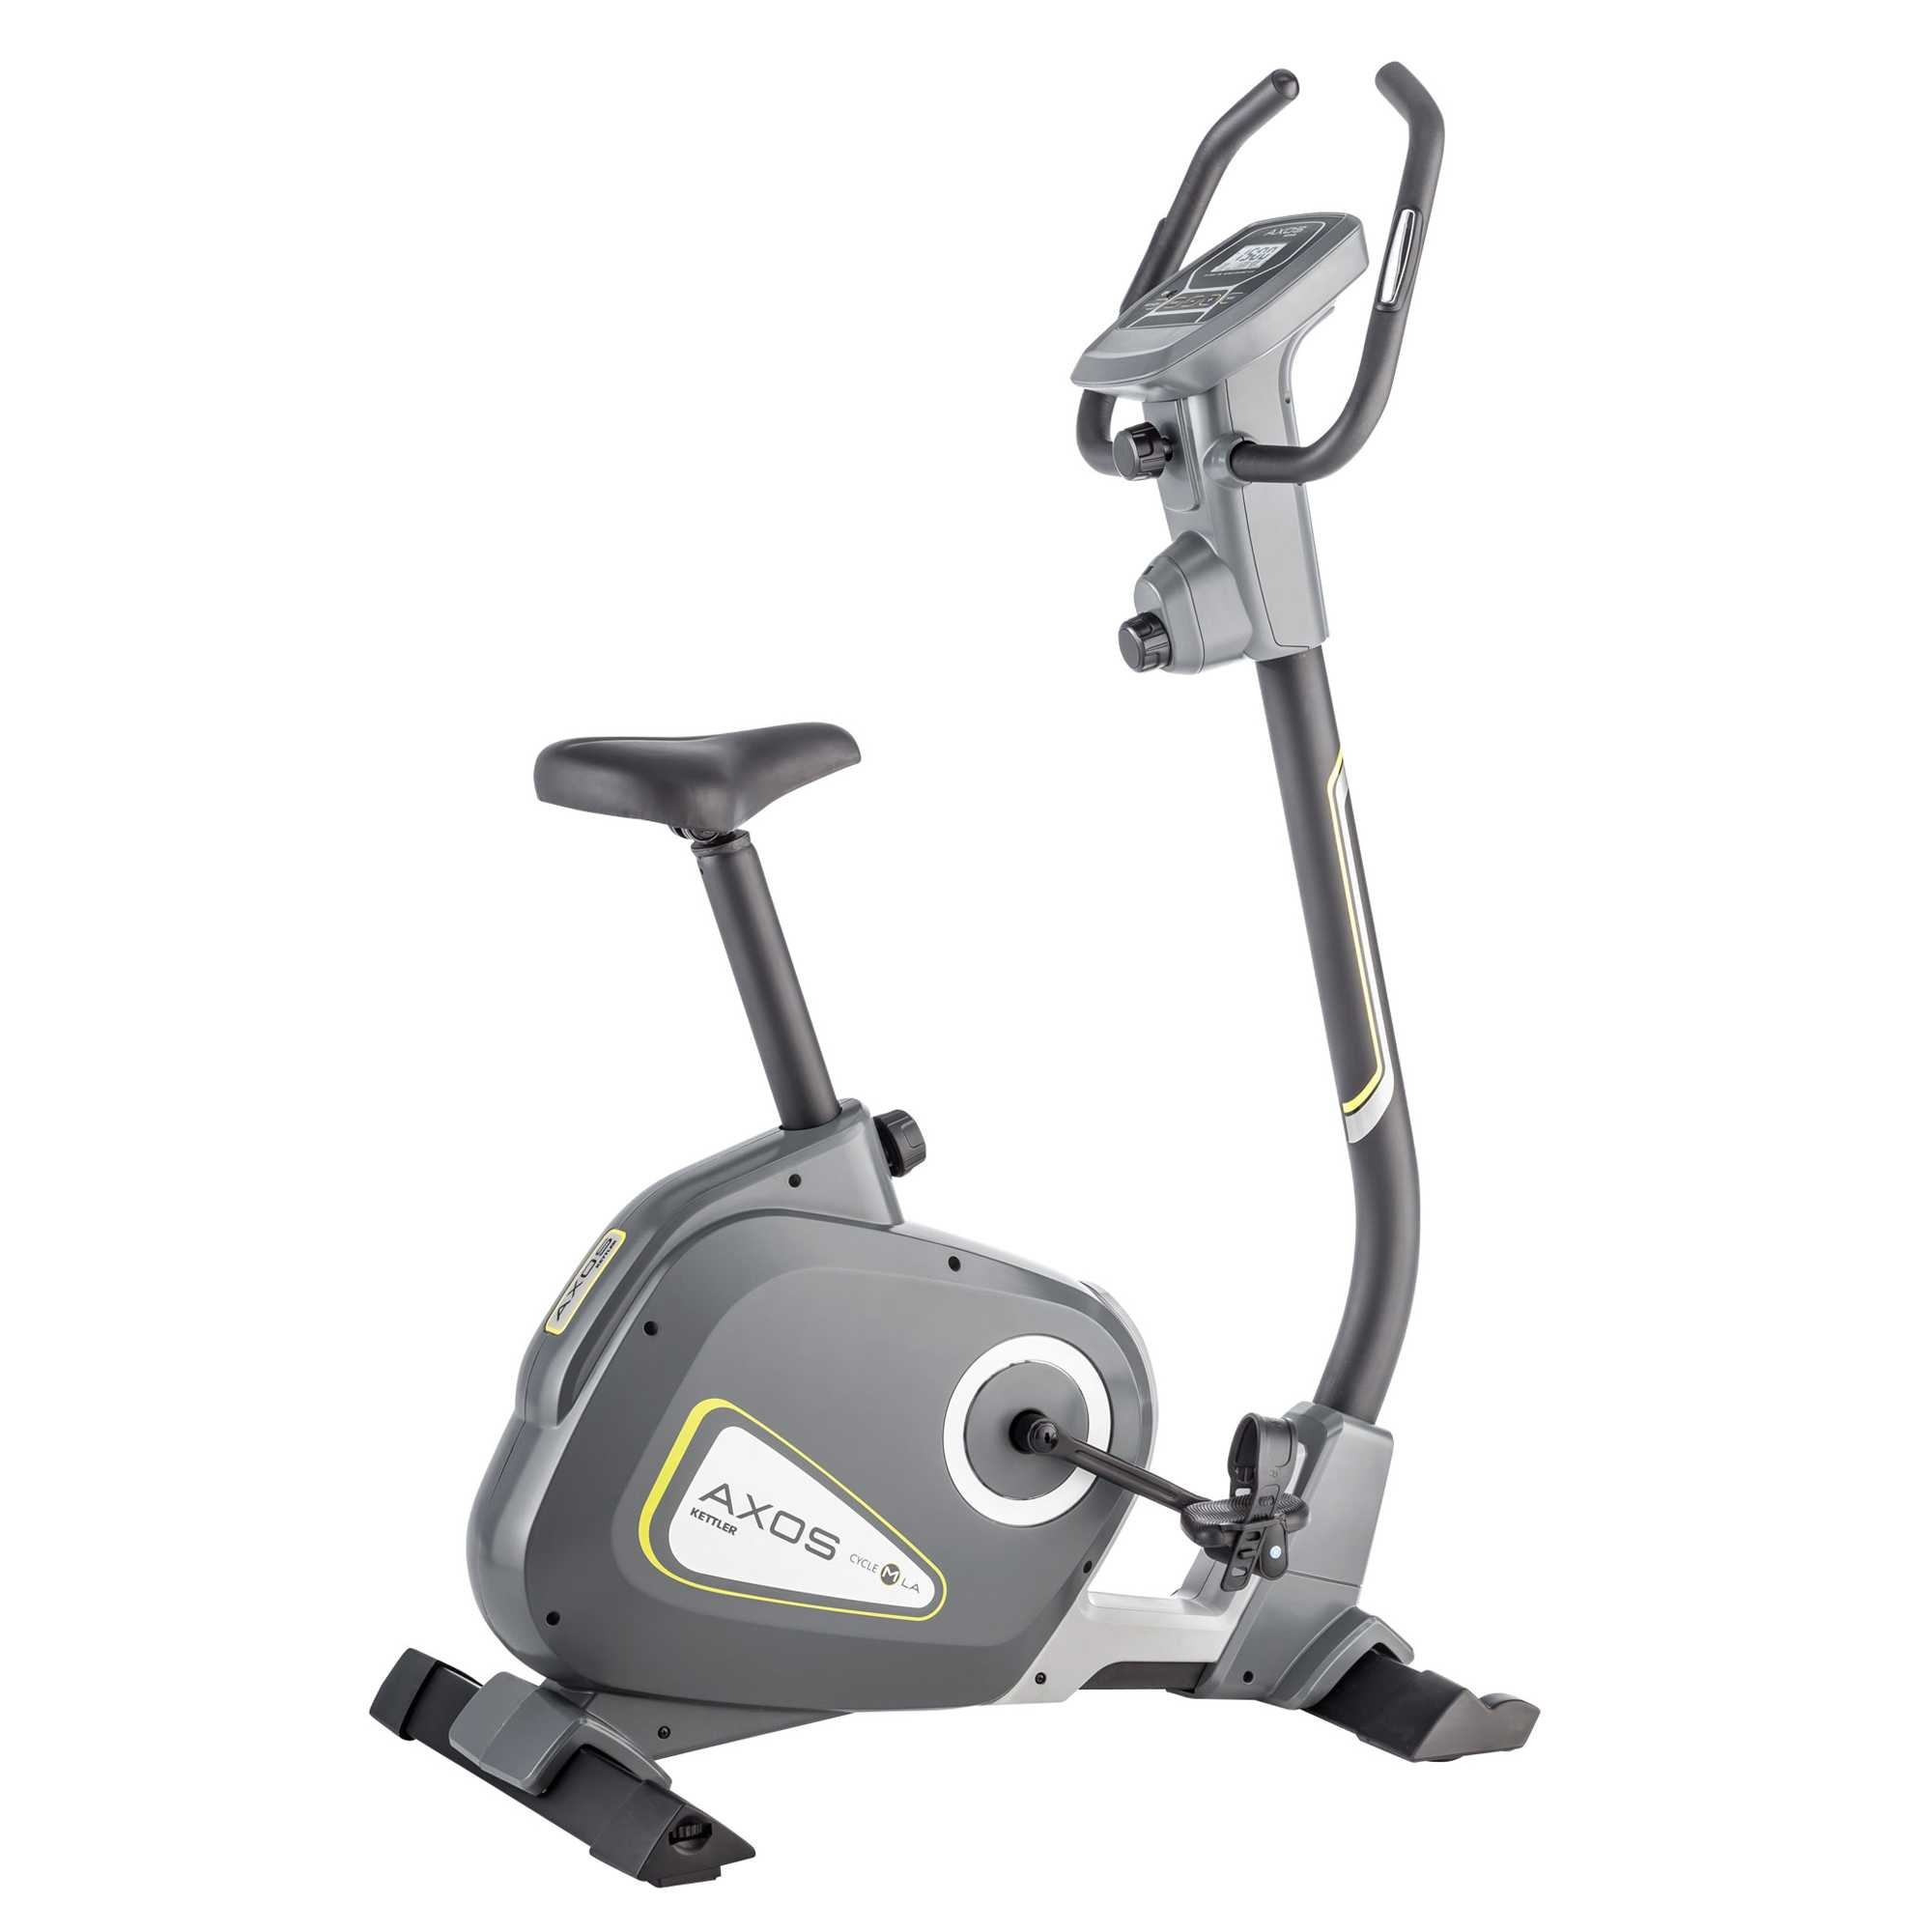 Kettler Fitness Kettler Axos Cycle P La Upright Bike In Affordable Price